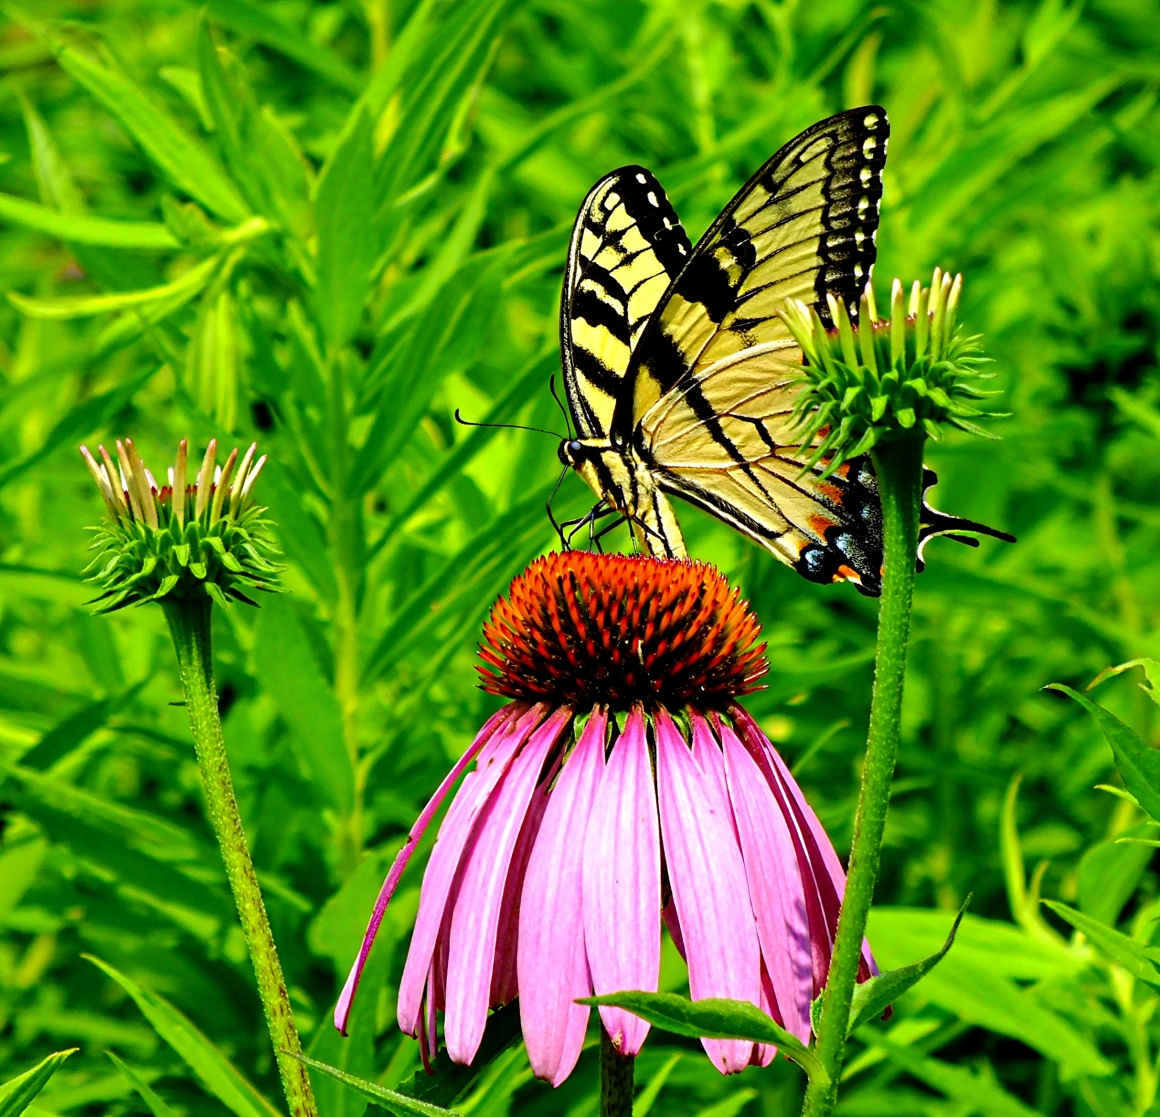 Yellow Swallowtail (photo 2) Photo by Thomas Peace 2014